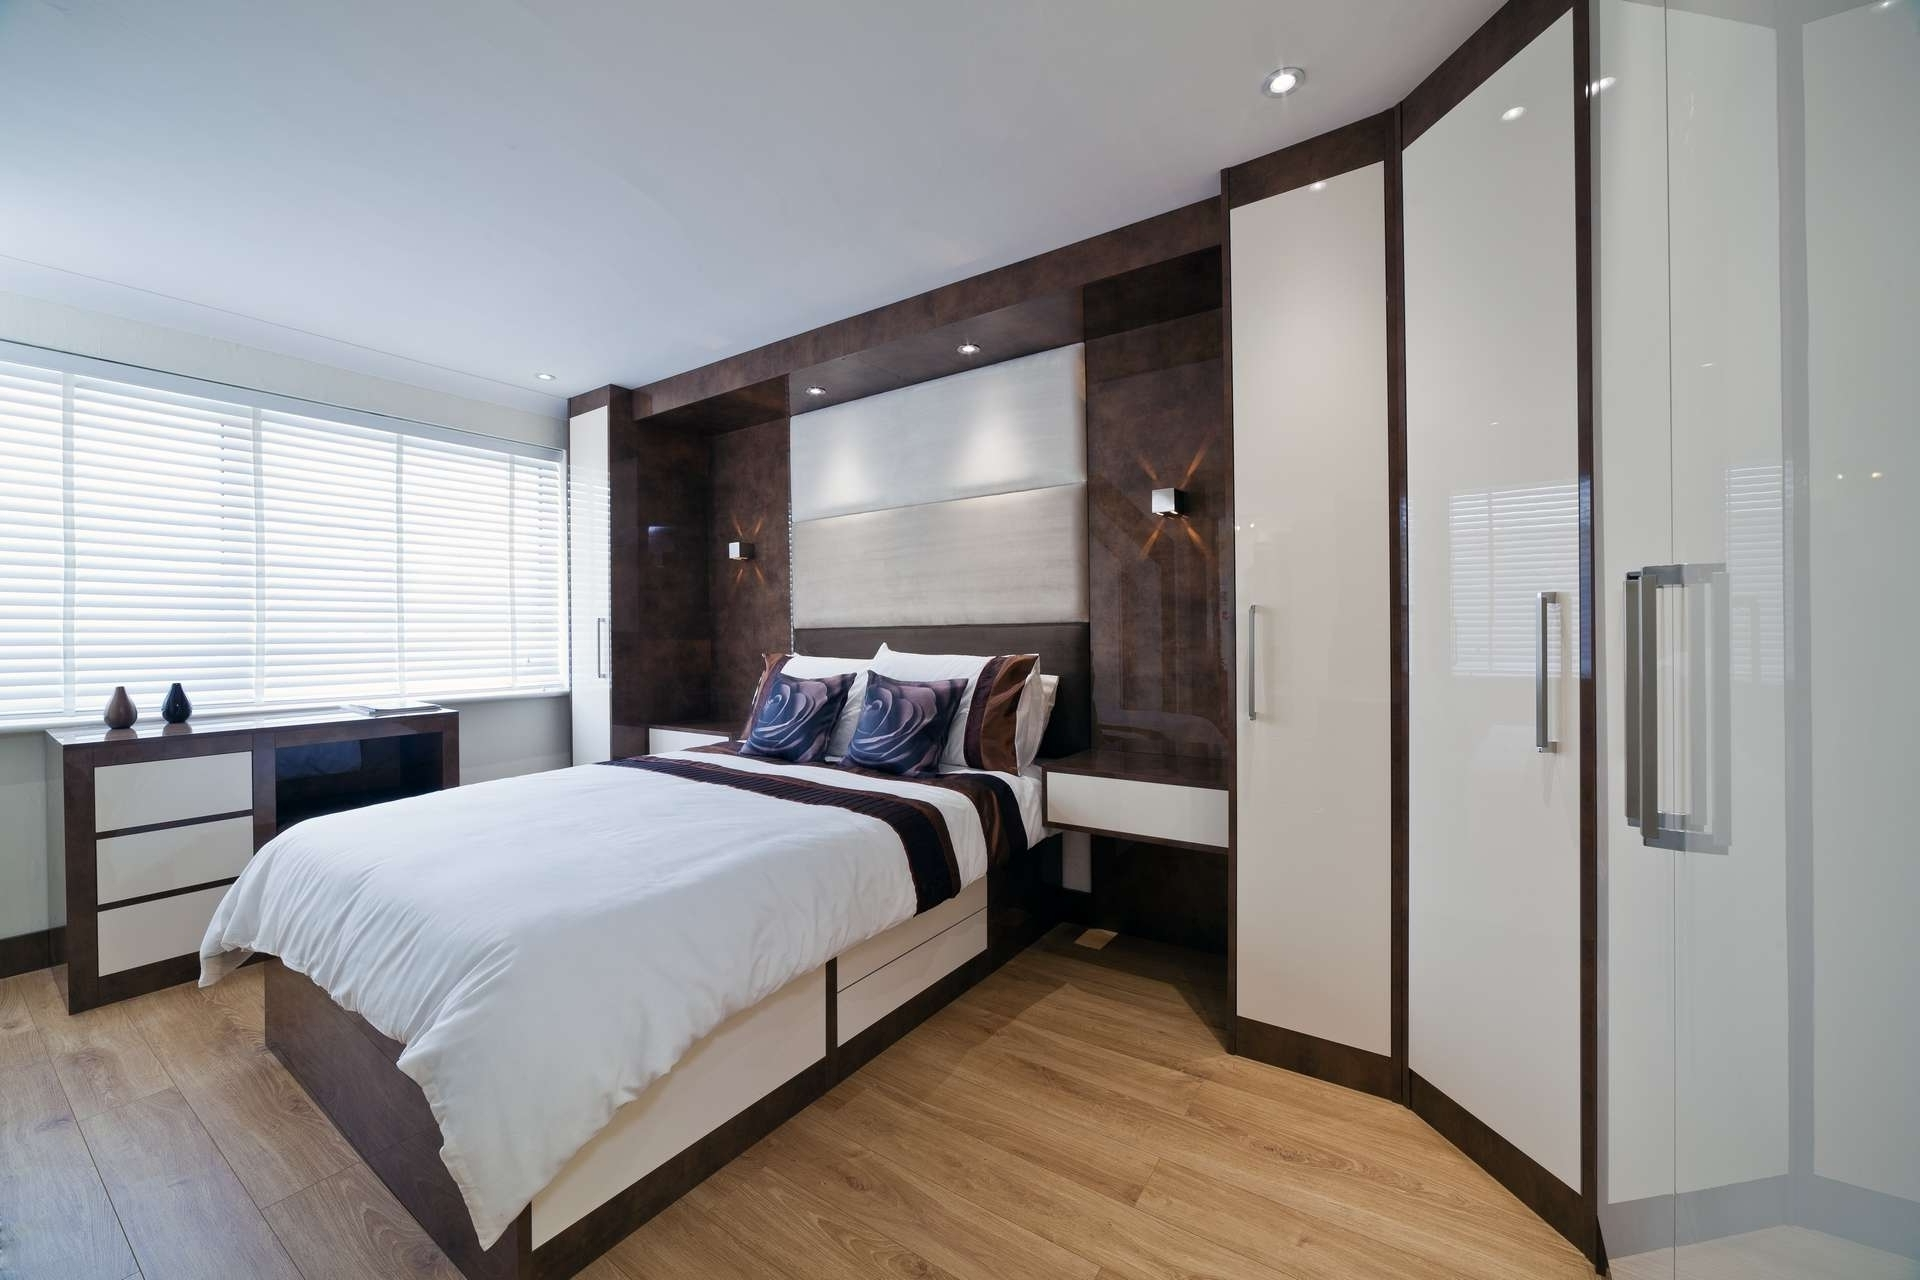 Overbed Fitted Wardrobes Bedroom Furniture (View 11 of 15)